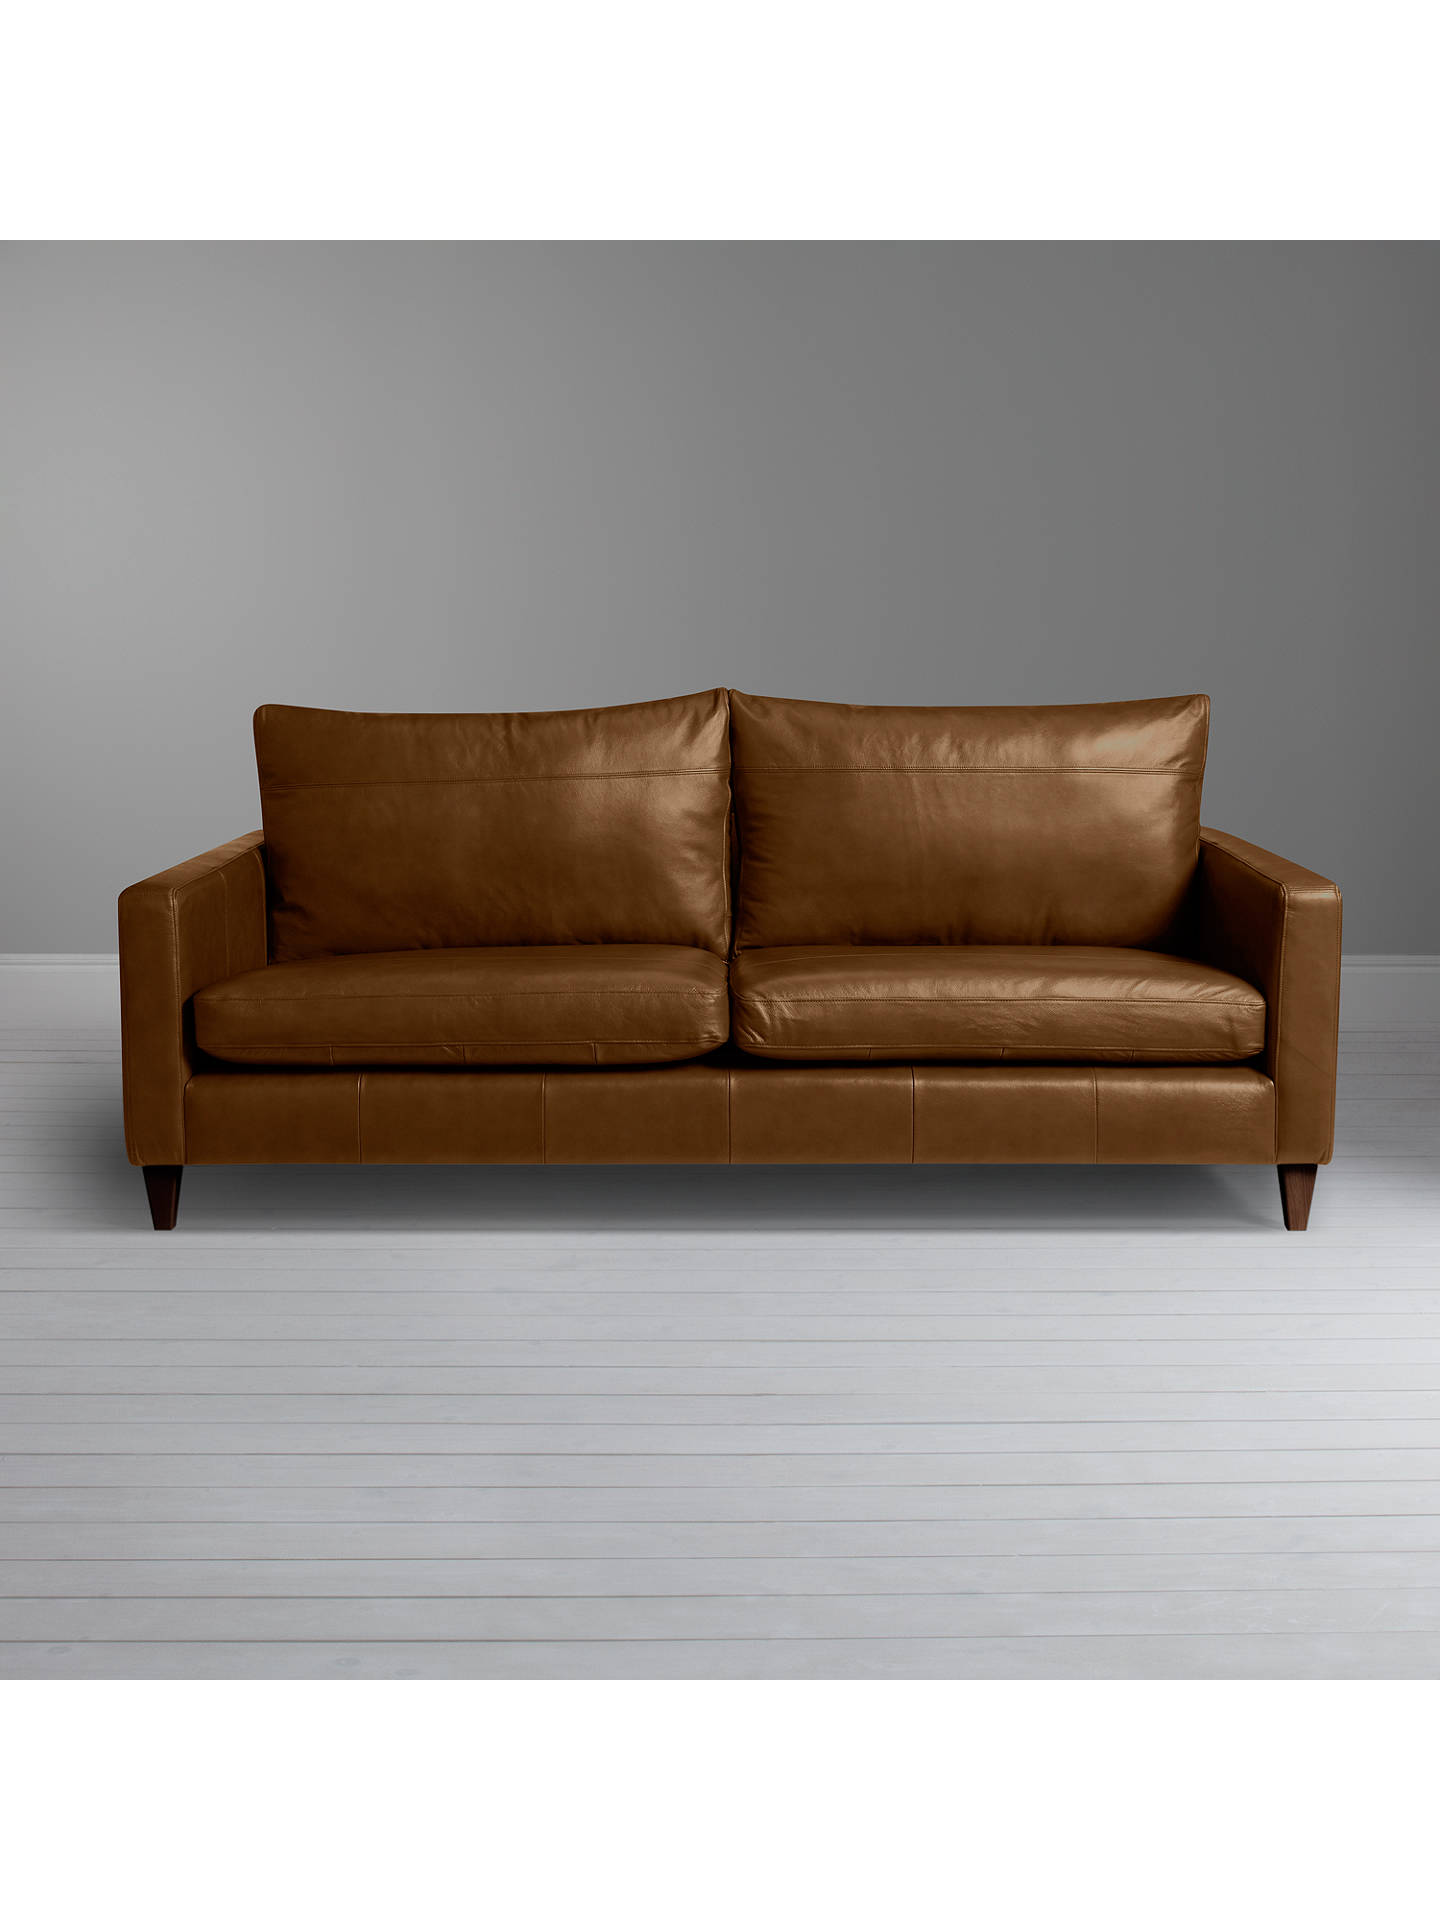 Buy John Lewis & Partners Bailey Grand 4 Seater Leather Sofa, Dark Leg, Demetra Light Tan Online at johnlewis.com